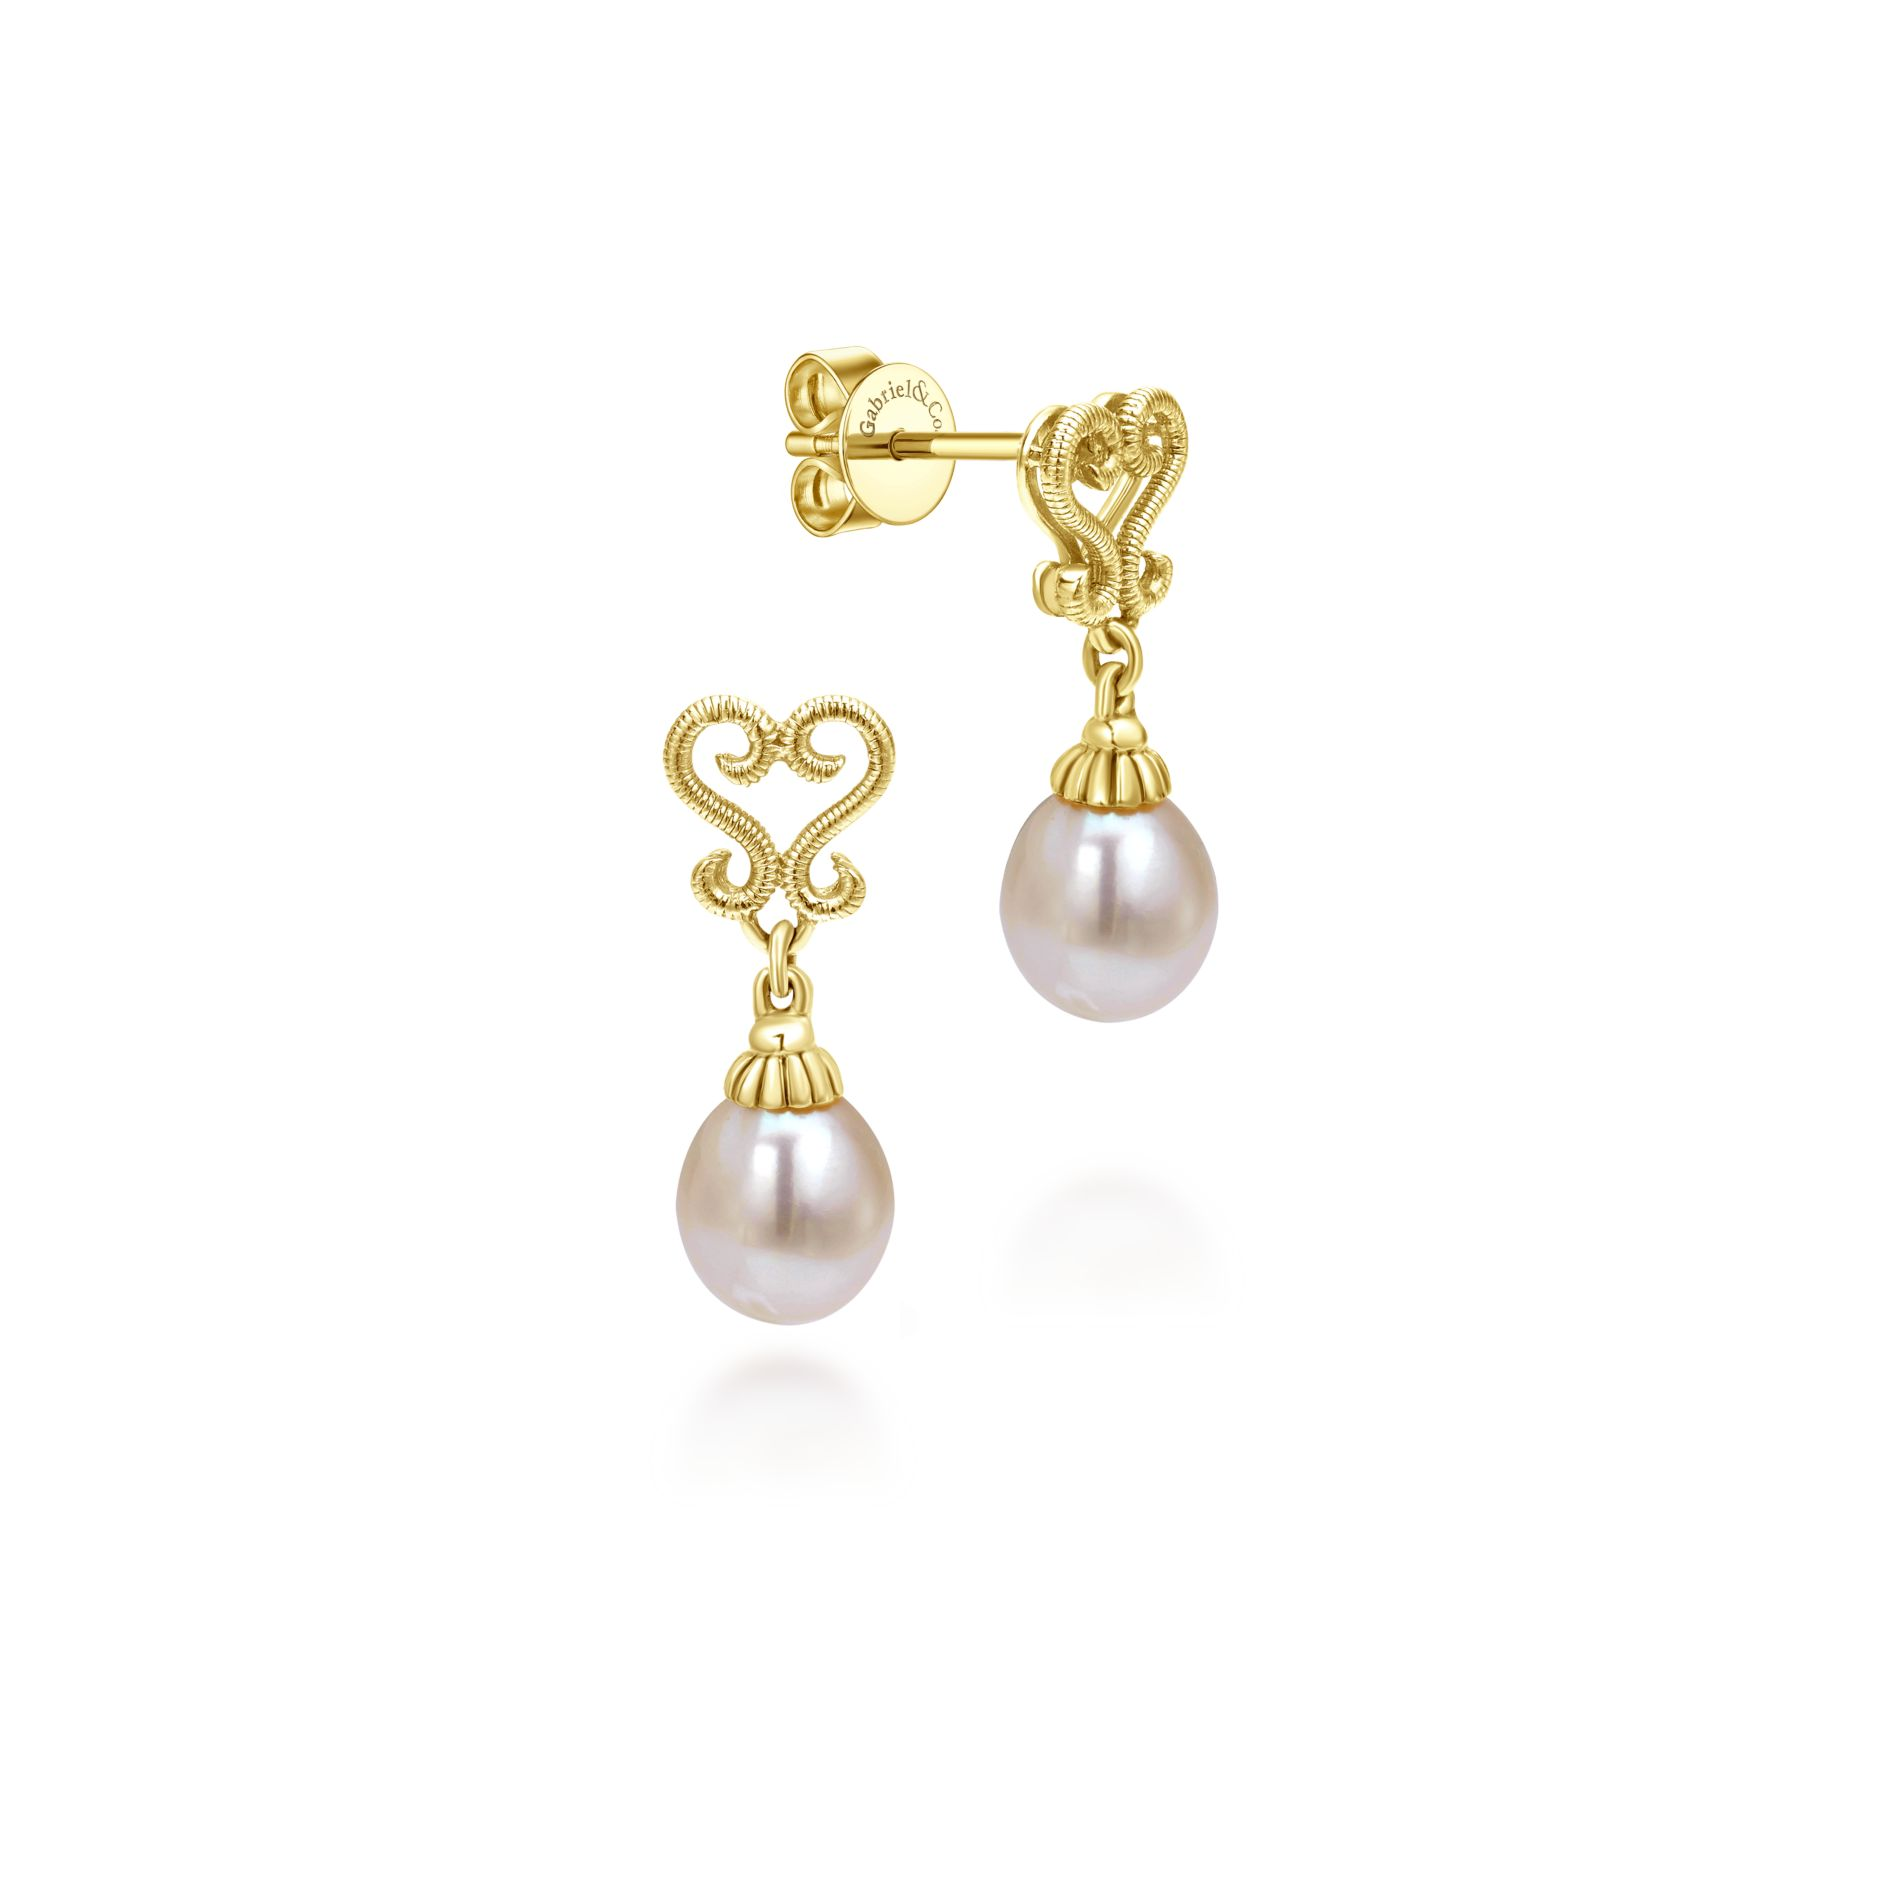 Earrings - YELLOW GOLD DROP CULTURED PEARL EARRINGS